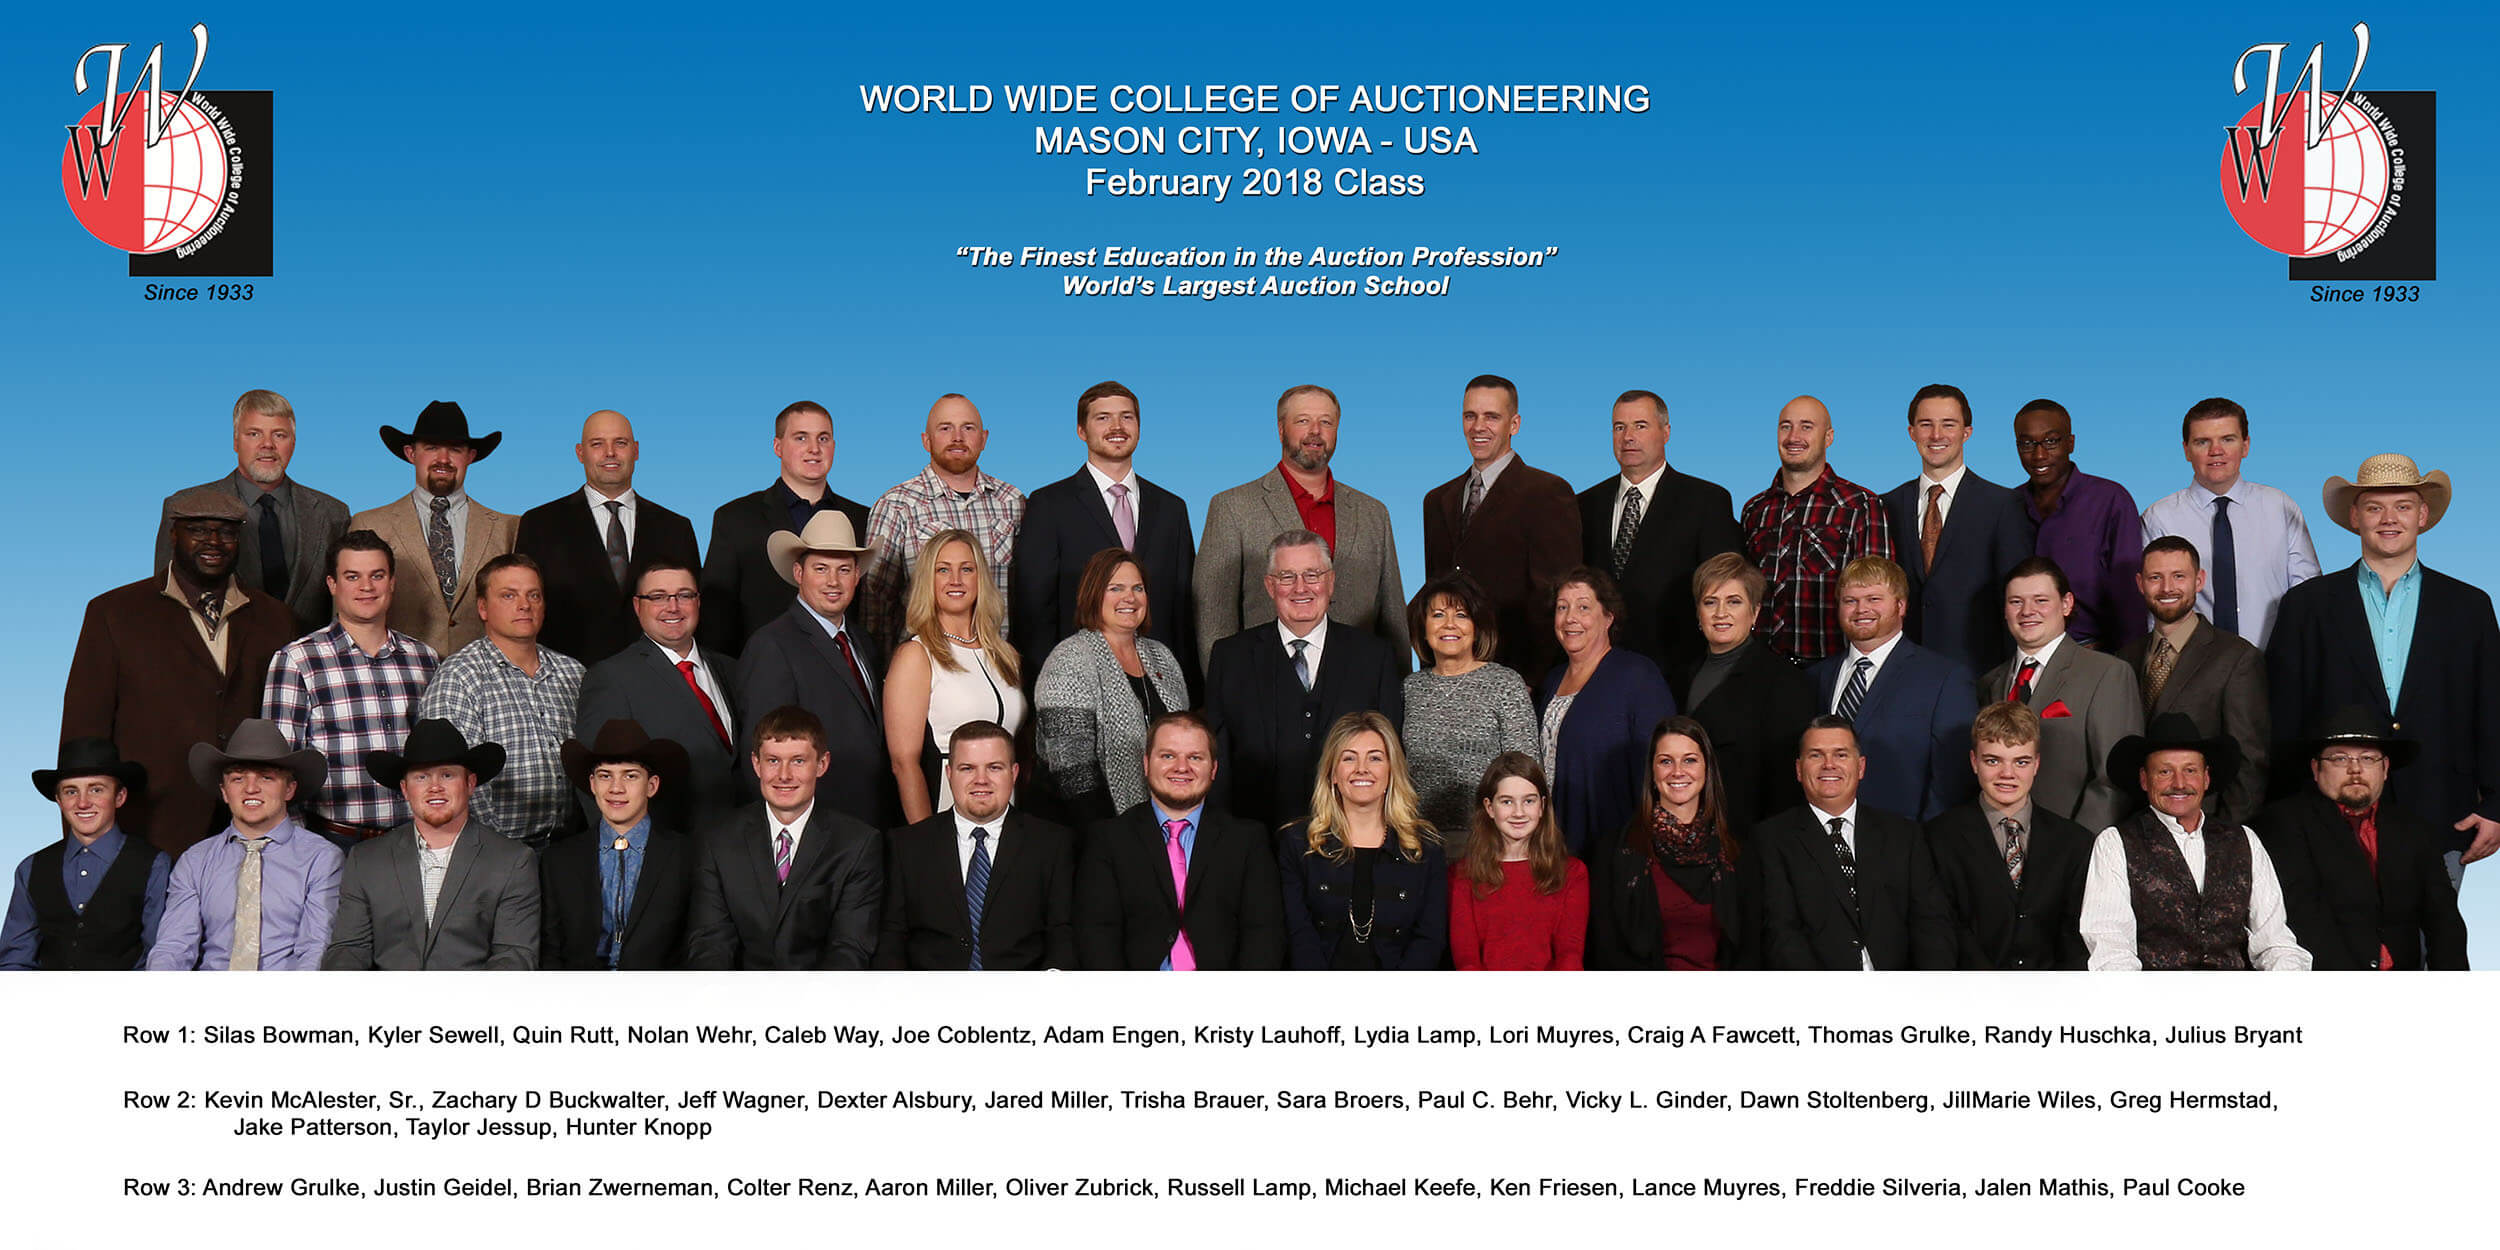 World Wide College of Auctioneering |